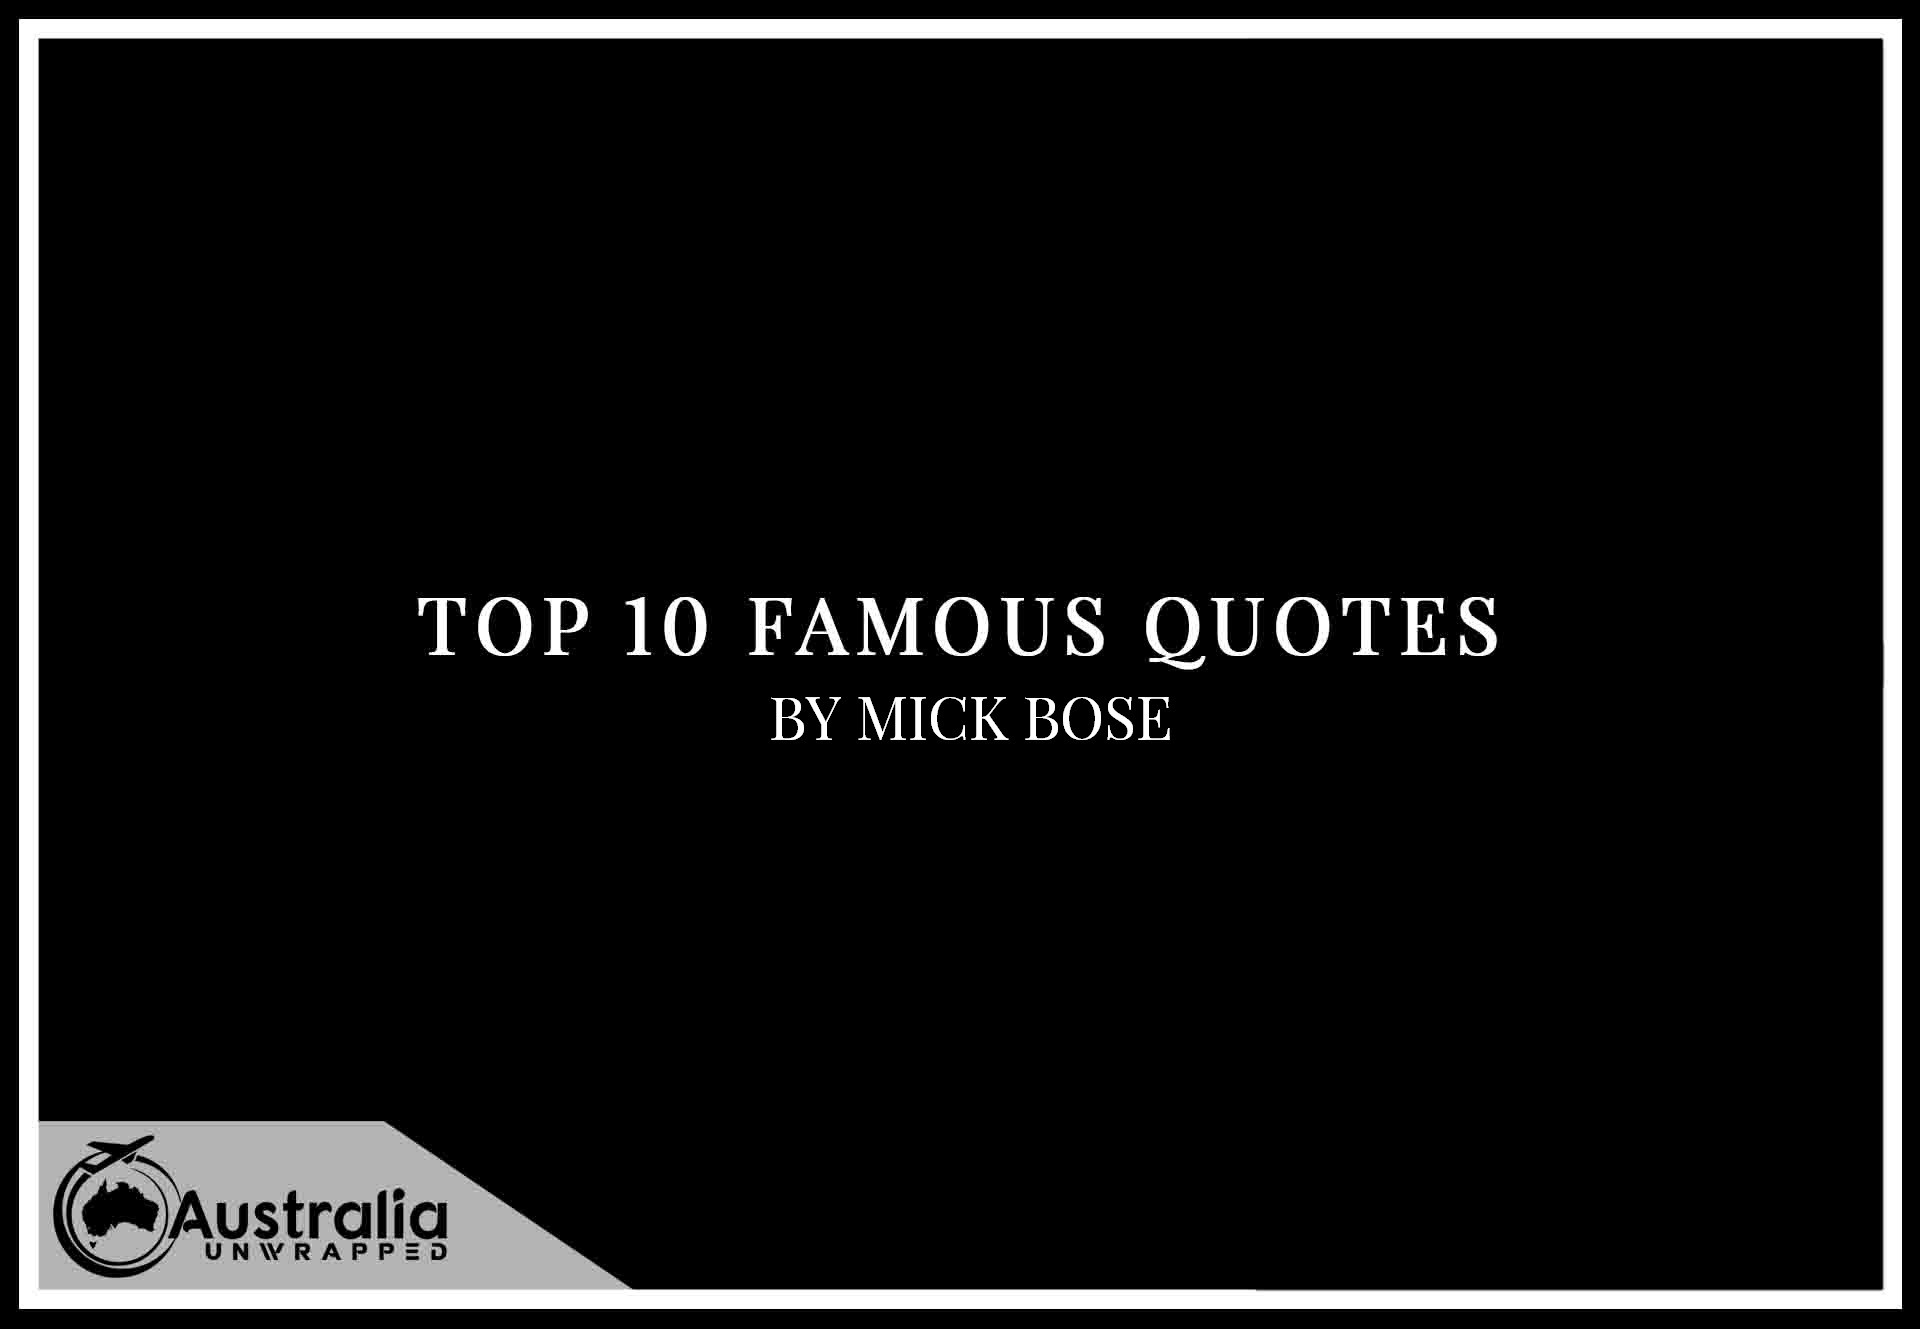 Top 10 Famous Quotes by Author Mick Bose